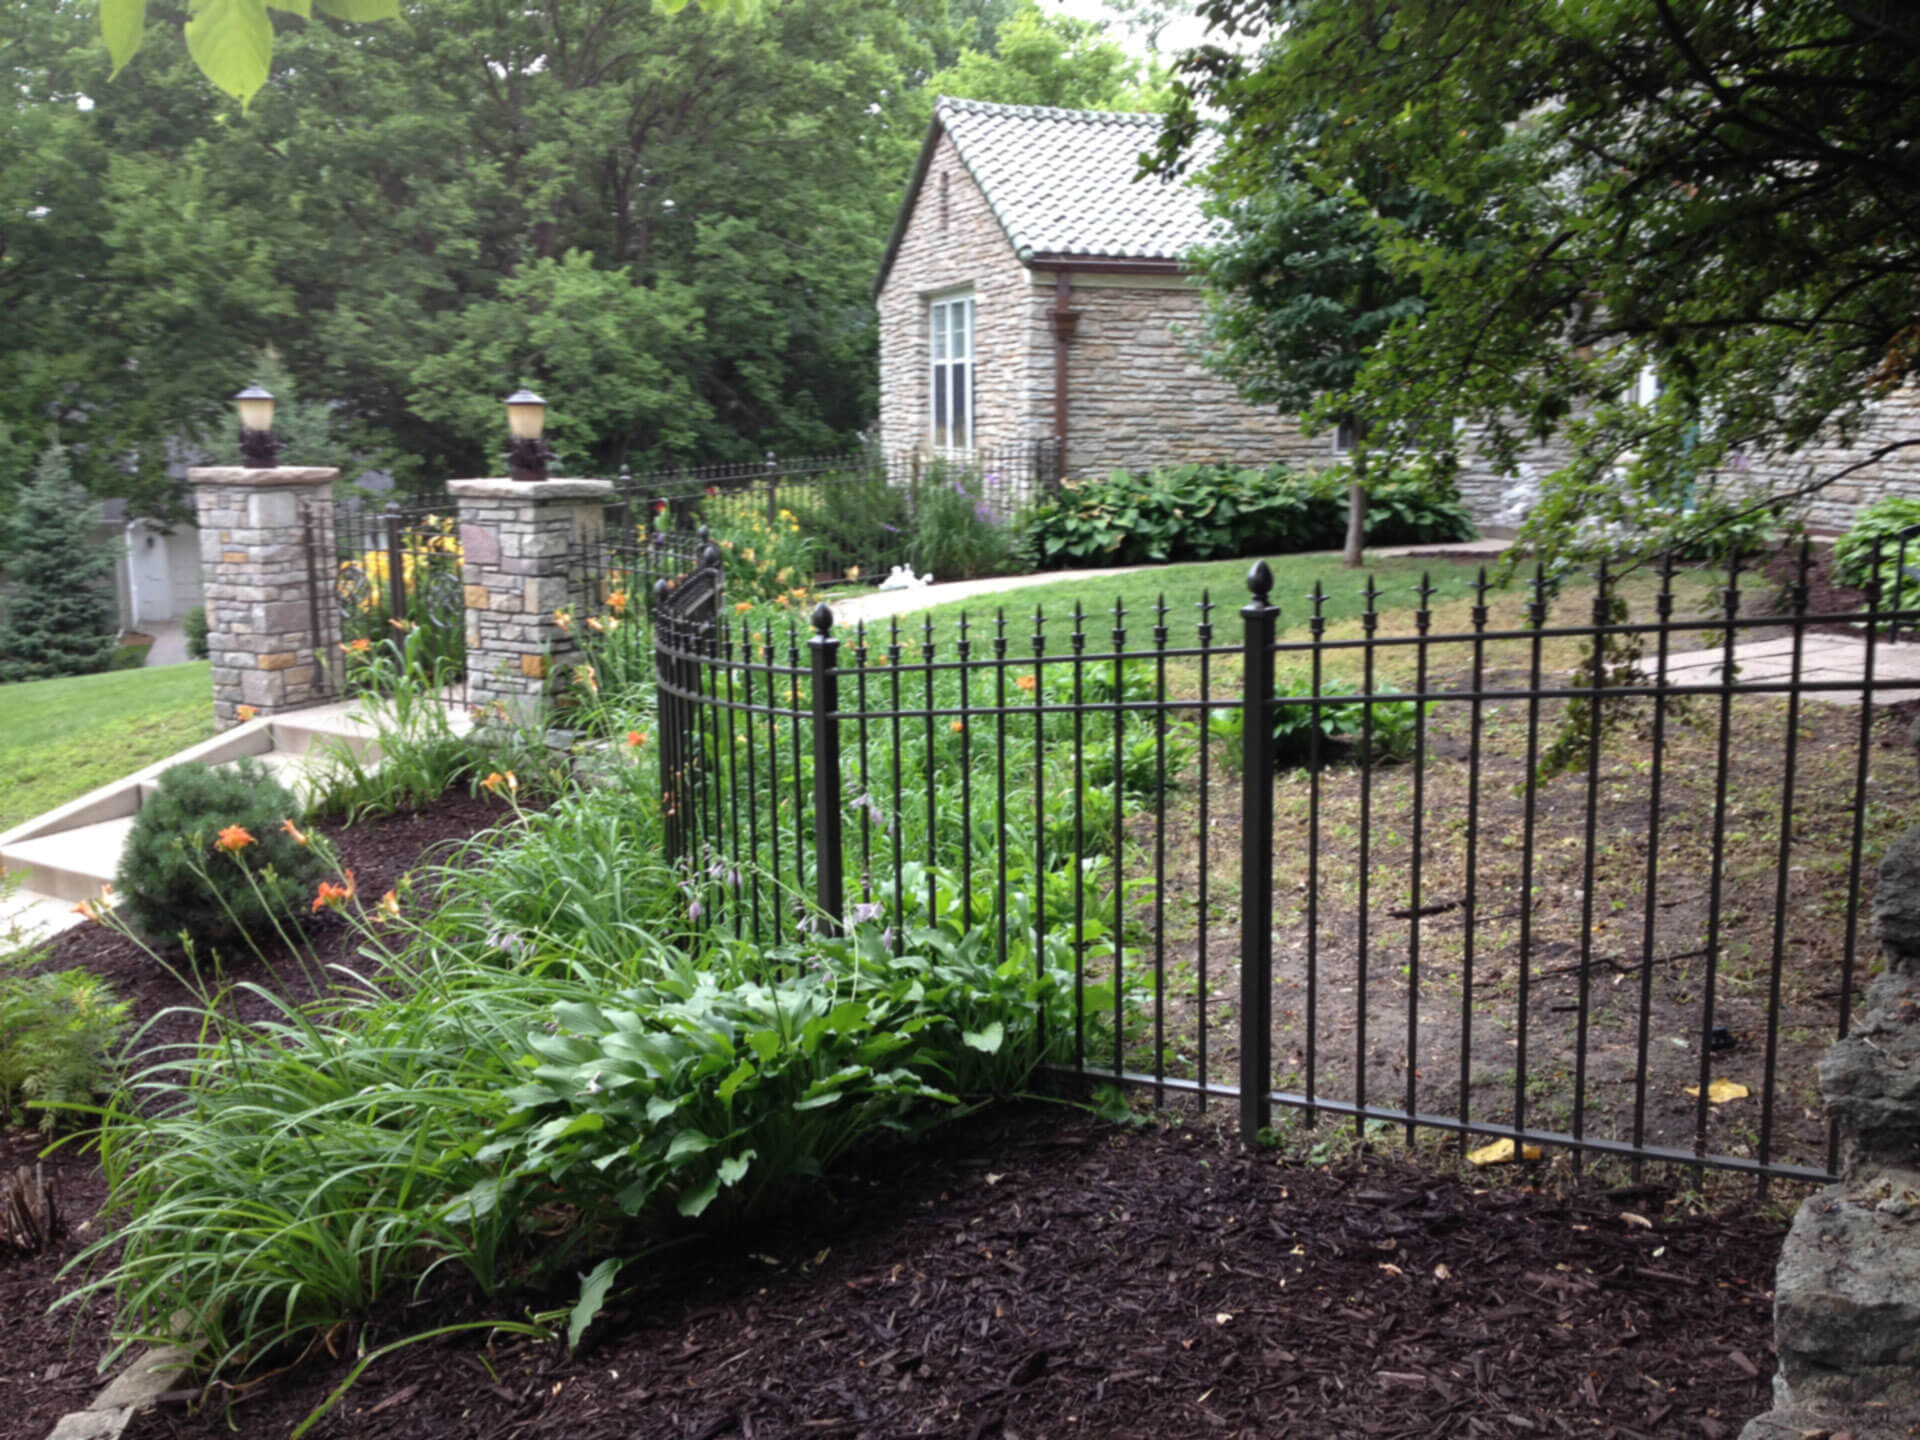 Clean The Decorative Wrought Iron Railing : Clean The Decorative Wrought Iron Railing : Wrought Iron Fences in St ...